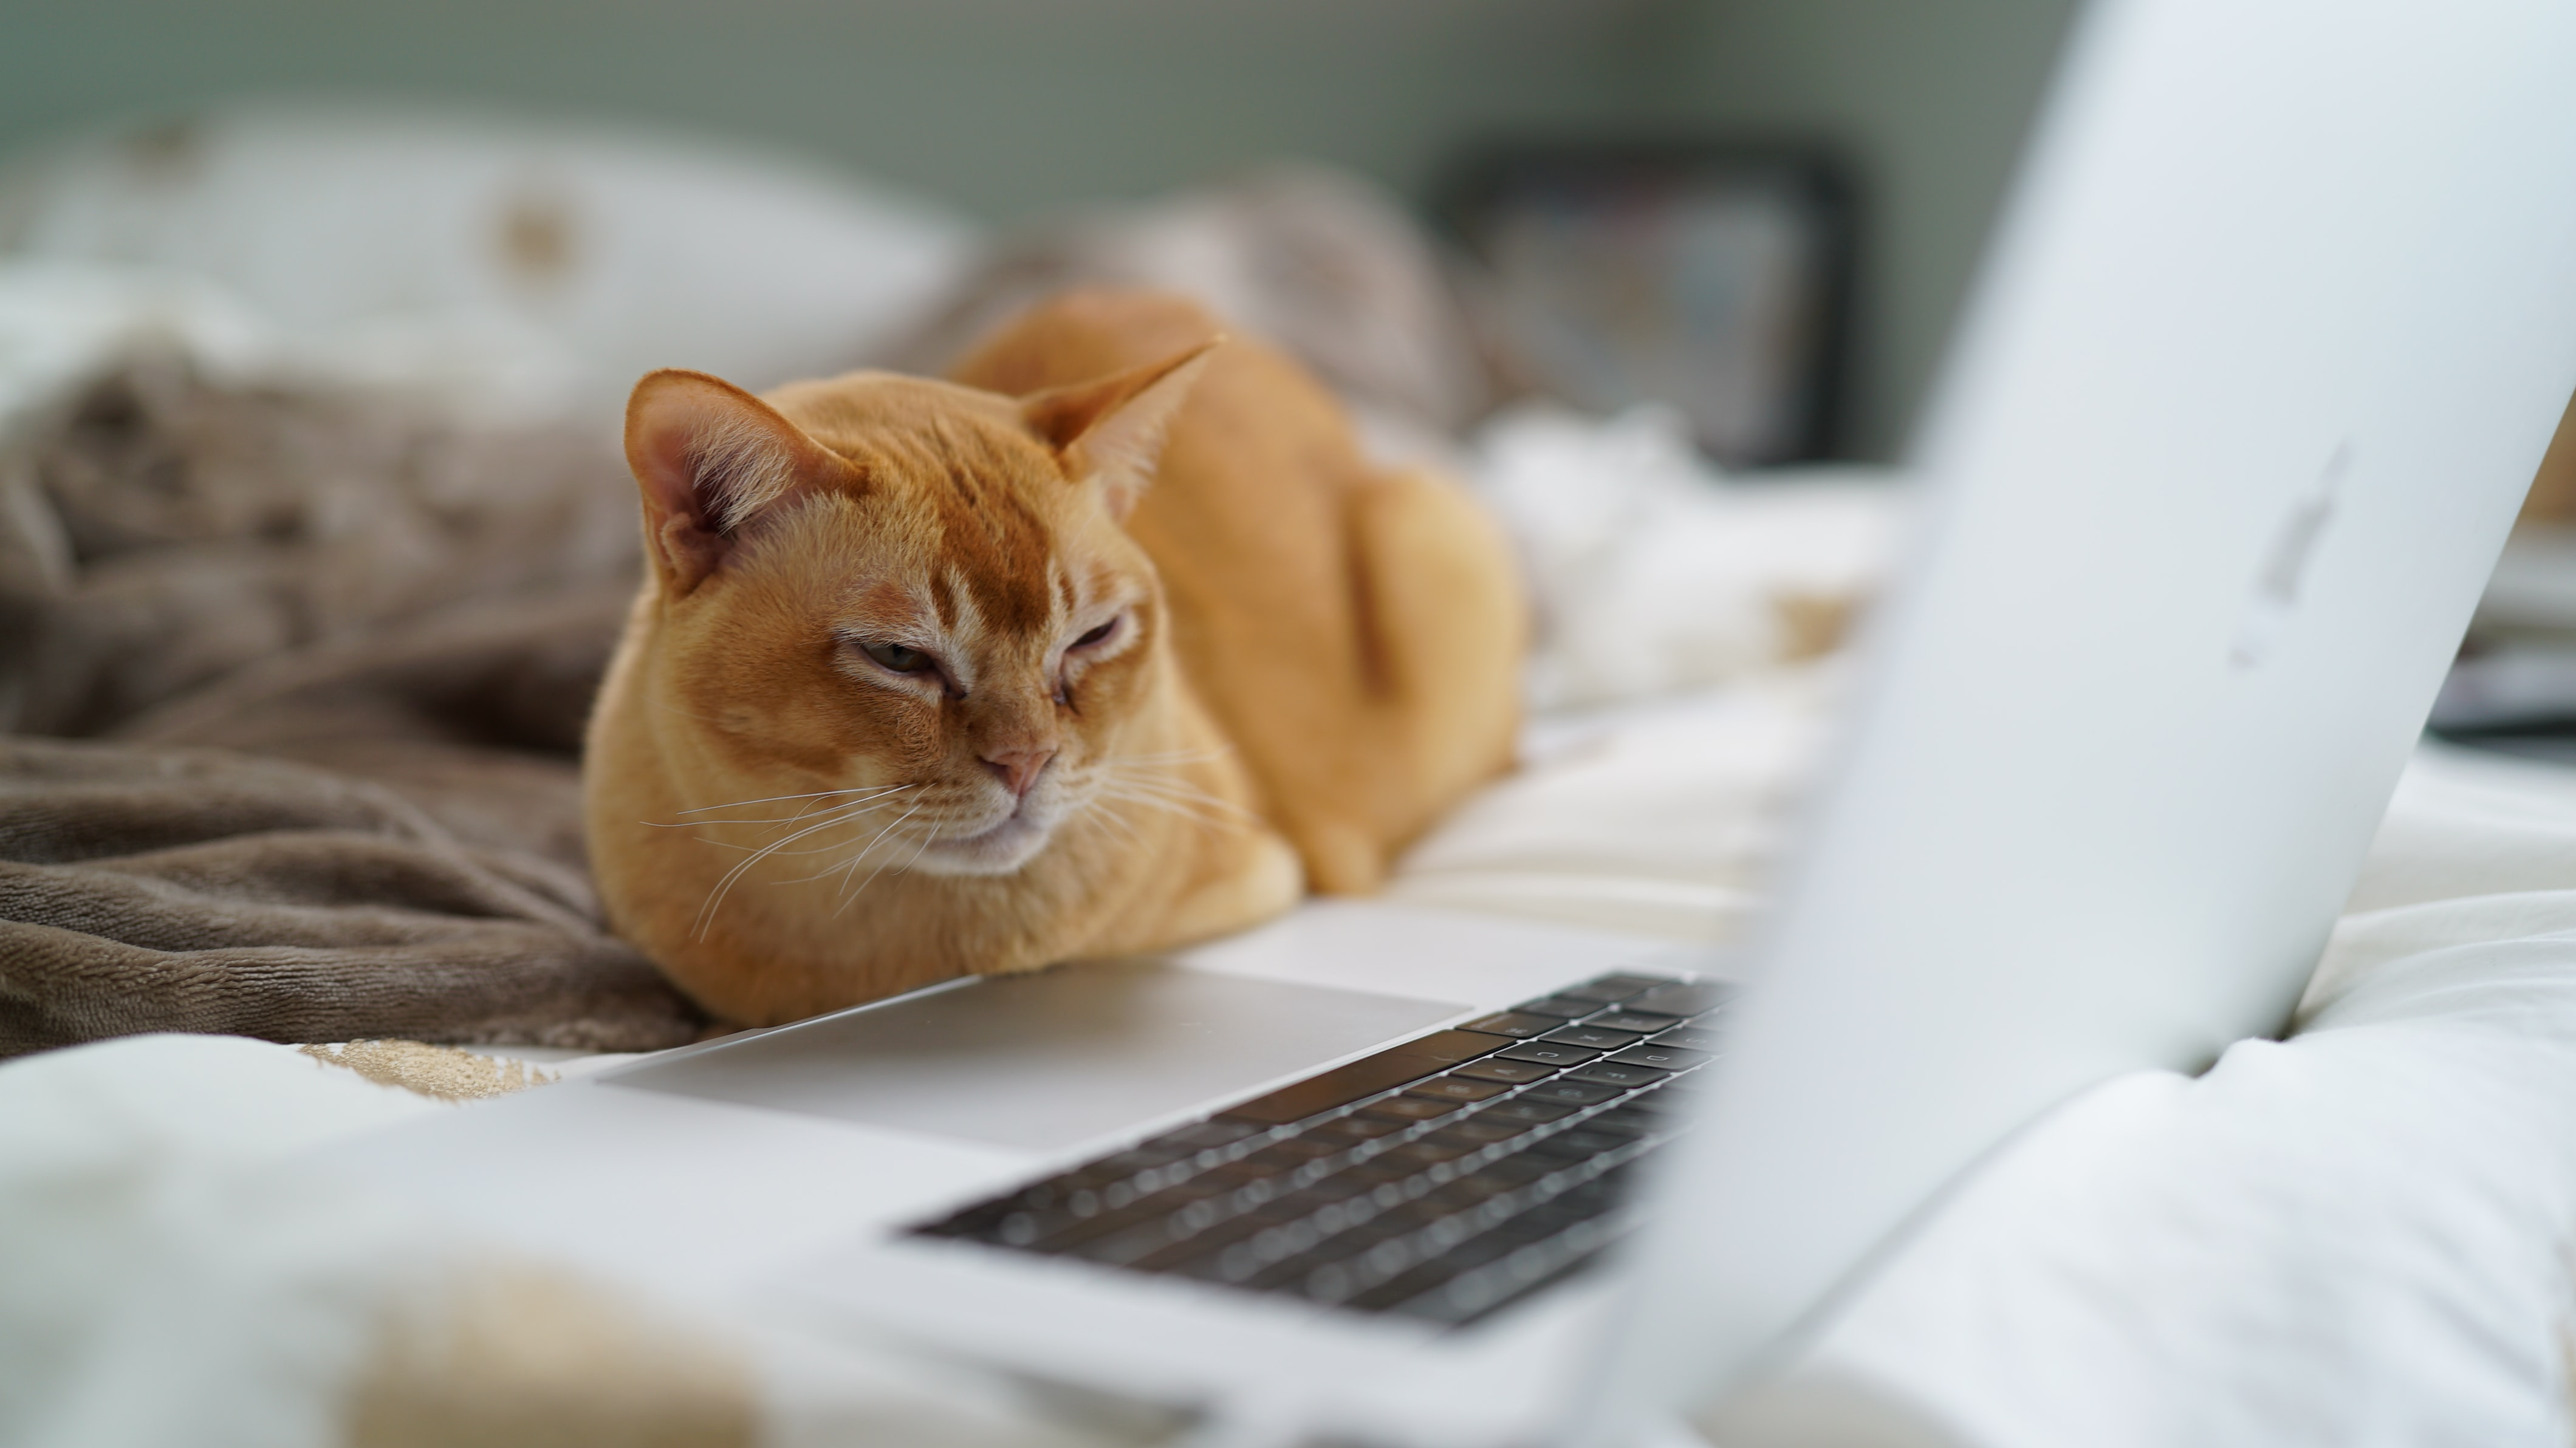 shallow focus photo of orange cat near laptop computer